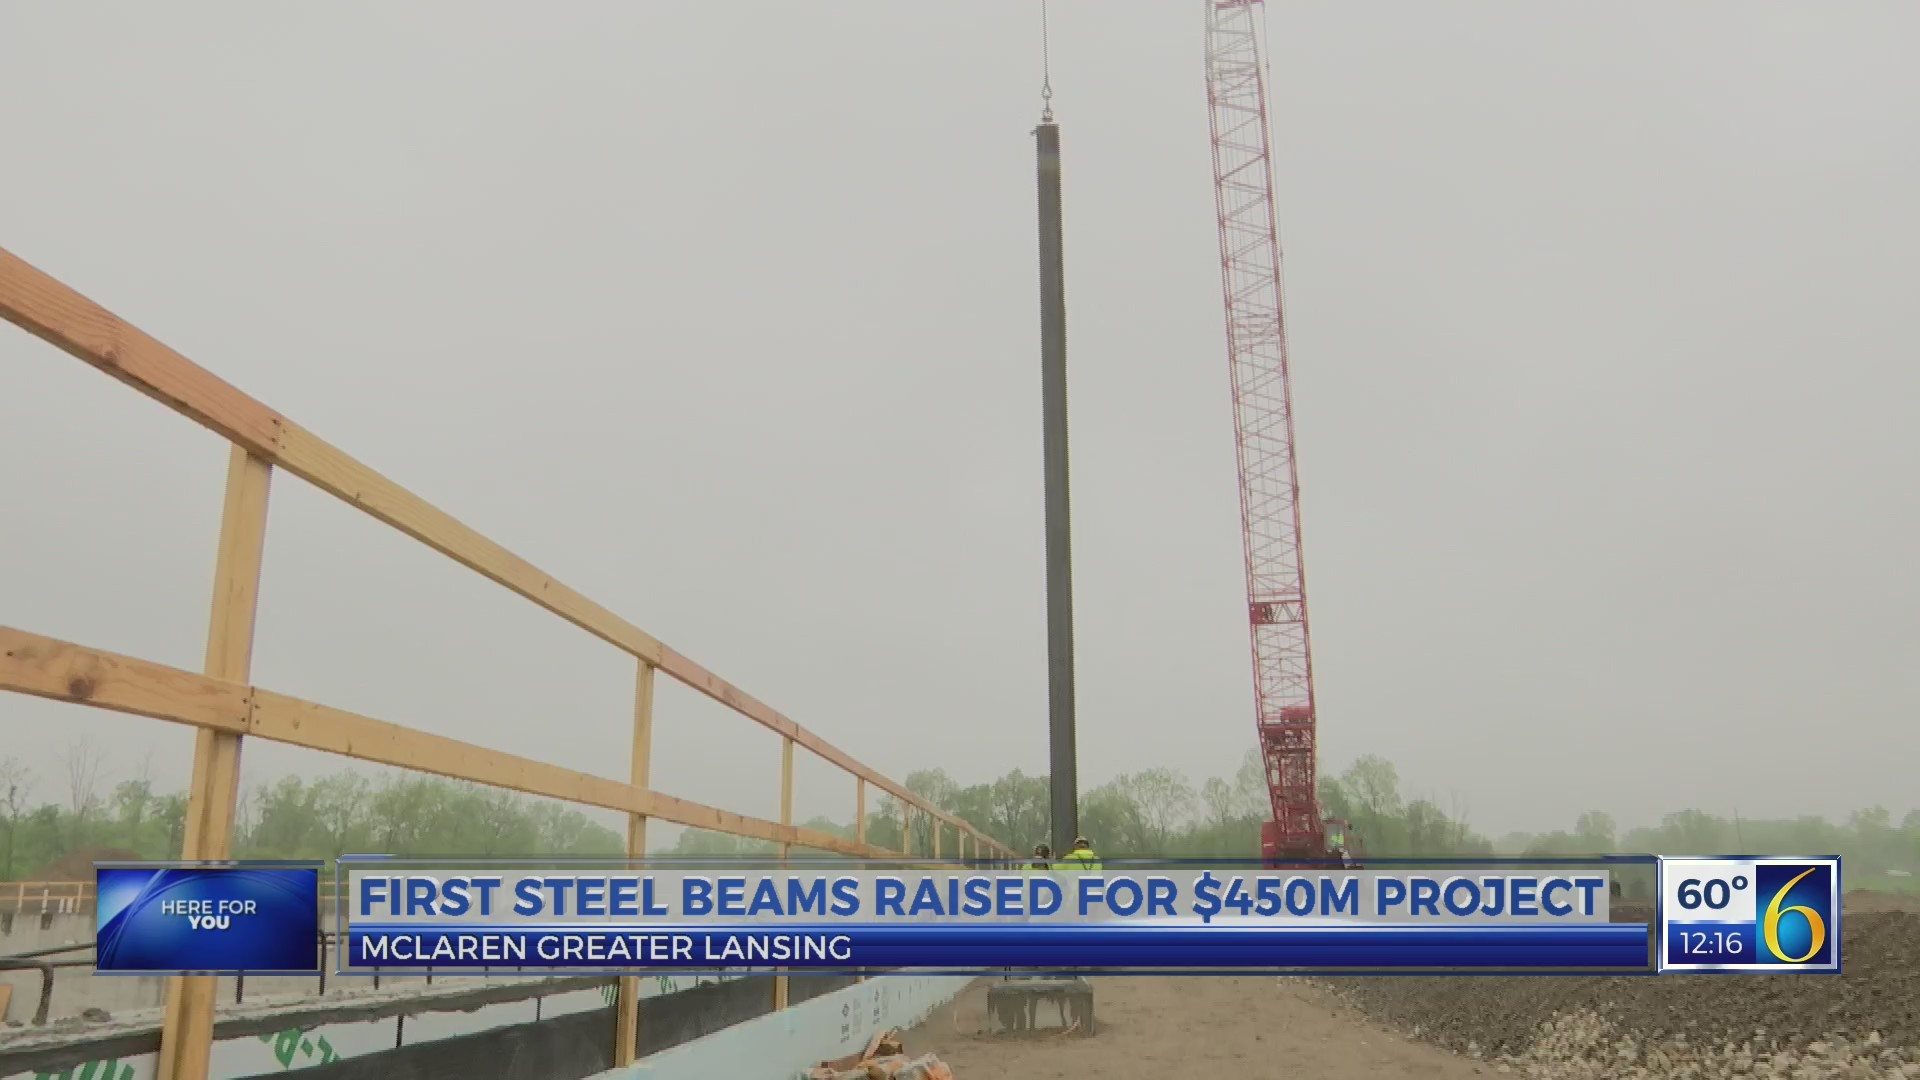 First steel beams raised McLaren